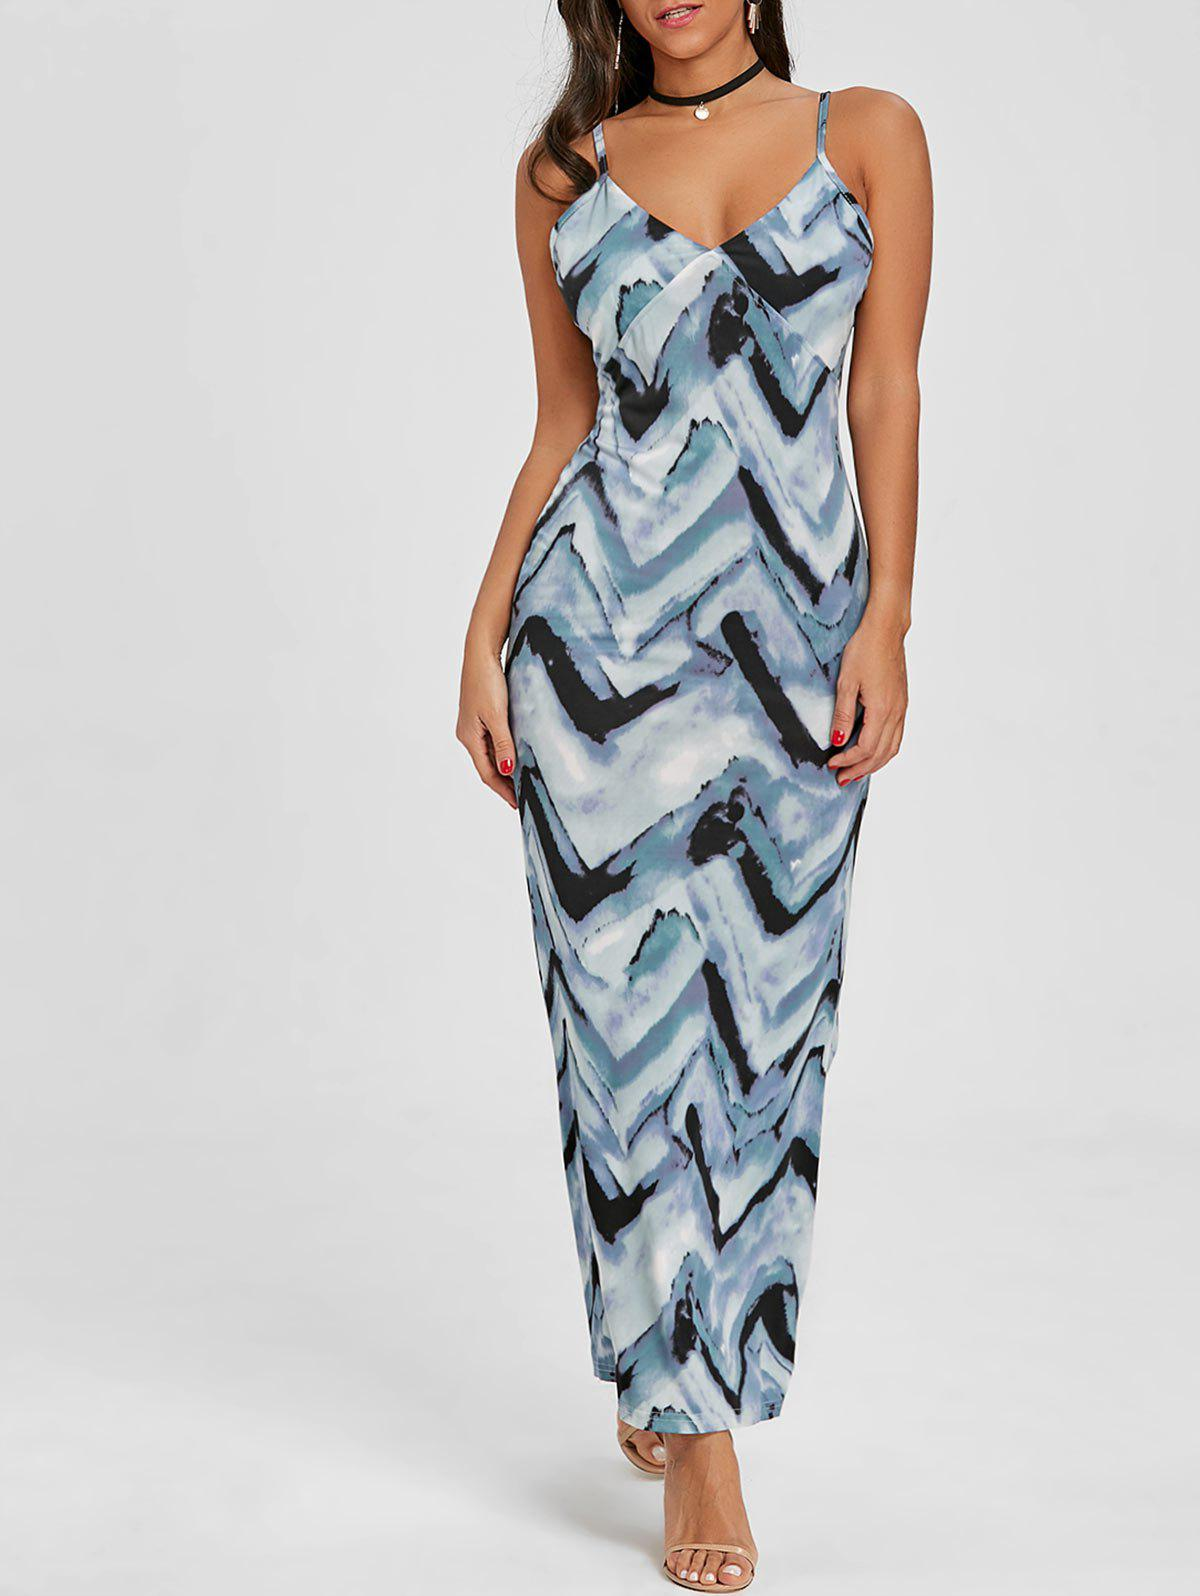 Cami Tie Dye Long Dress - CLOUDY L